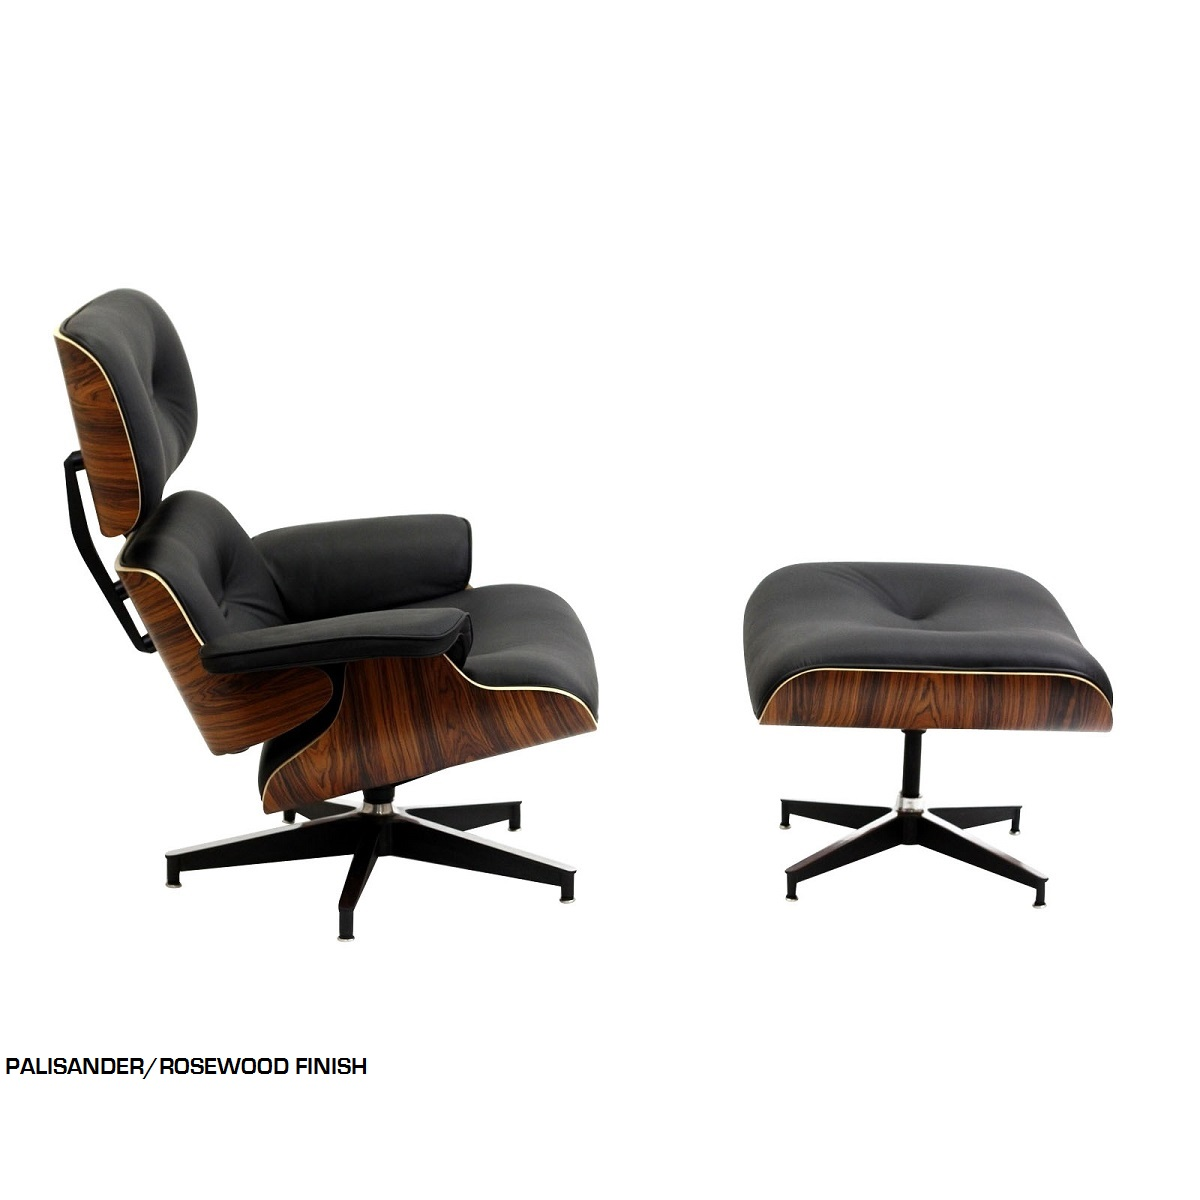 Shop Eames Style Mid-Century Lounge Chair & Ottoman Set for only $2049